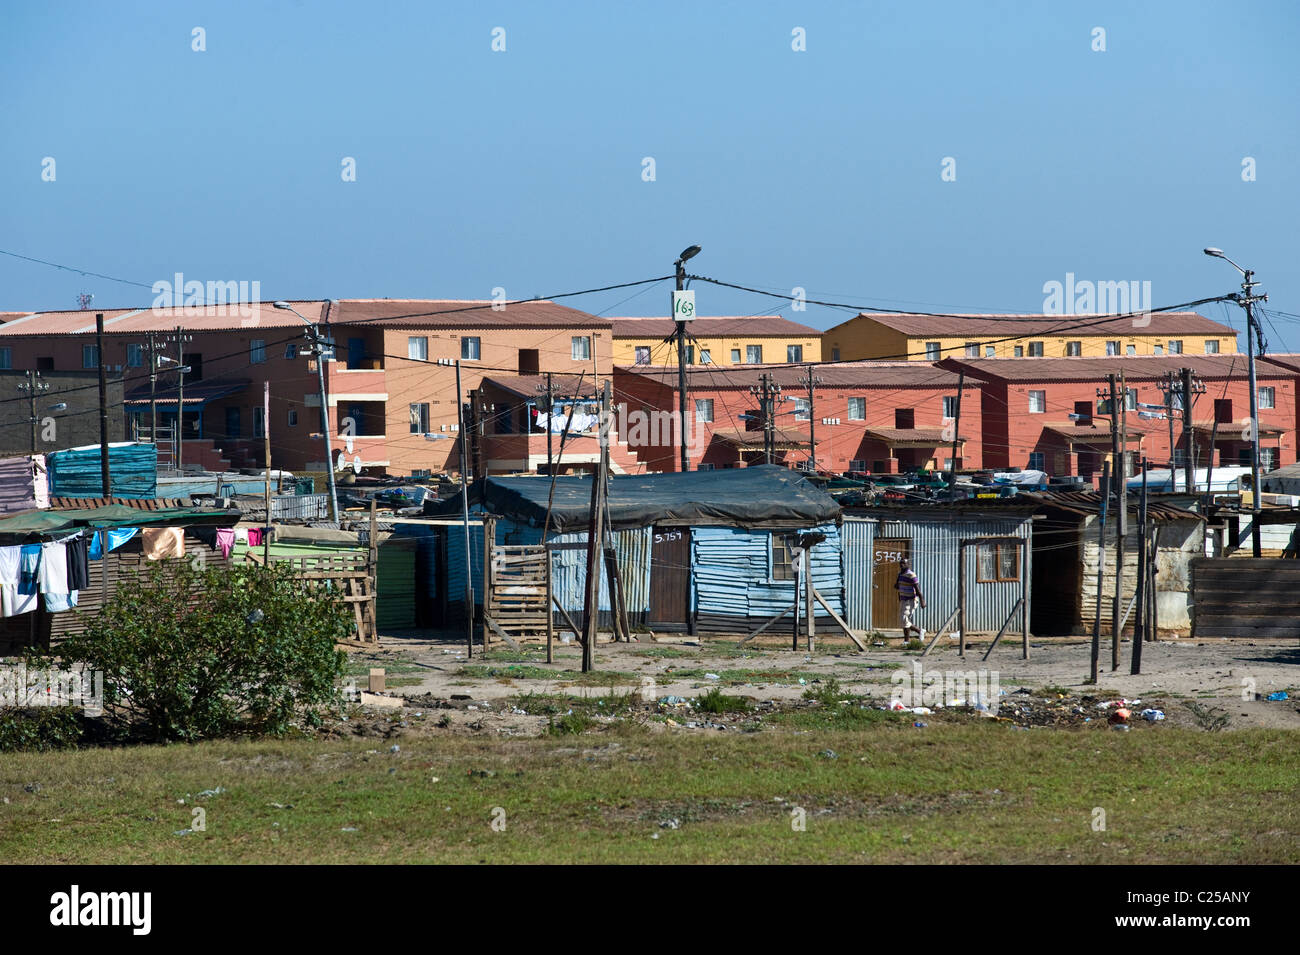 Shacks and new housing along Vanguard Drive, Epping, Cape Town, South Africa Stock Photo